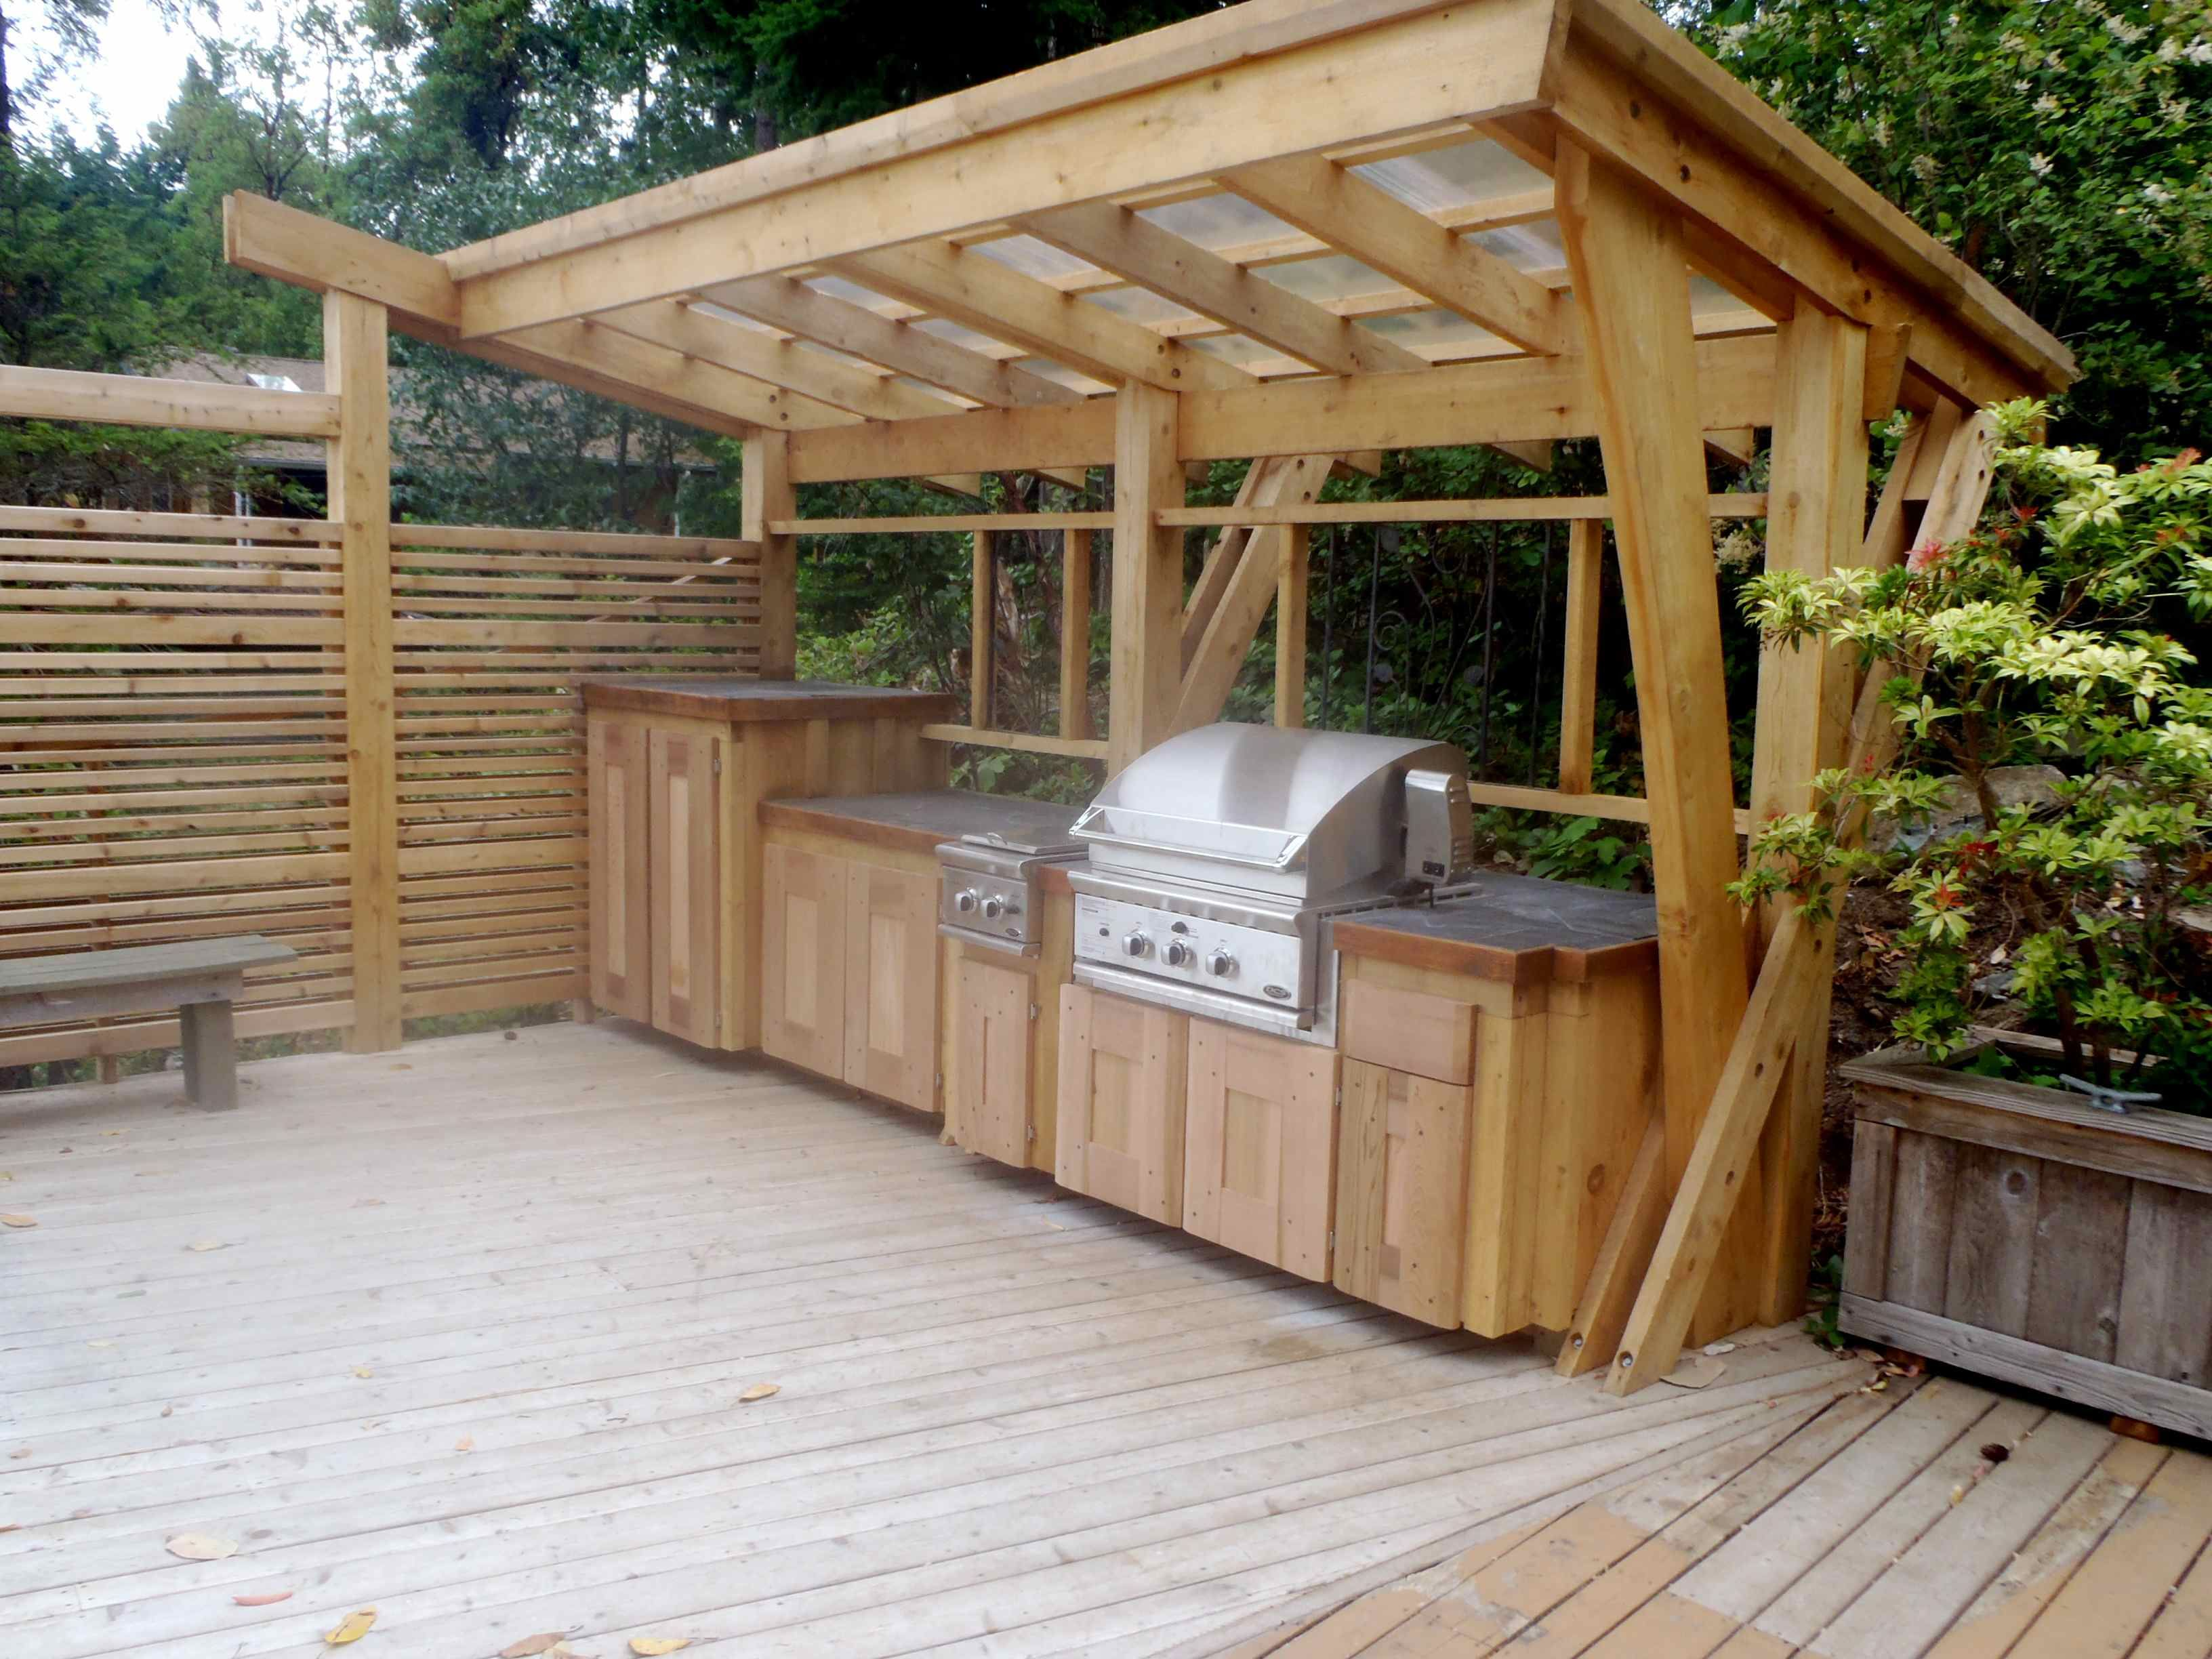 outdoor kitchen | Cedar_BBQ_Cover_Outdoor_Kitchen.jpg | For the Home ...